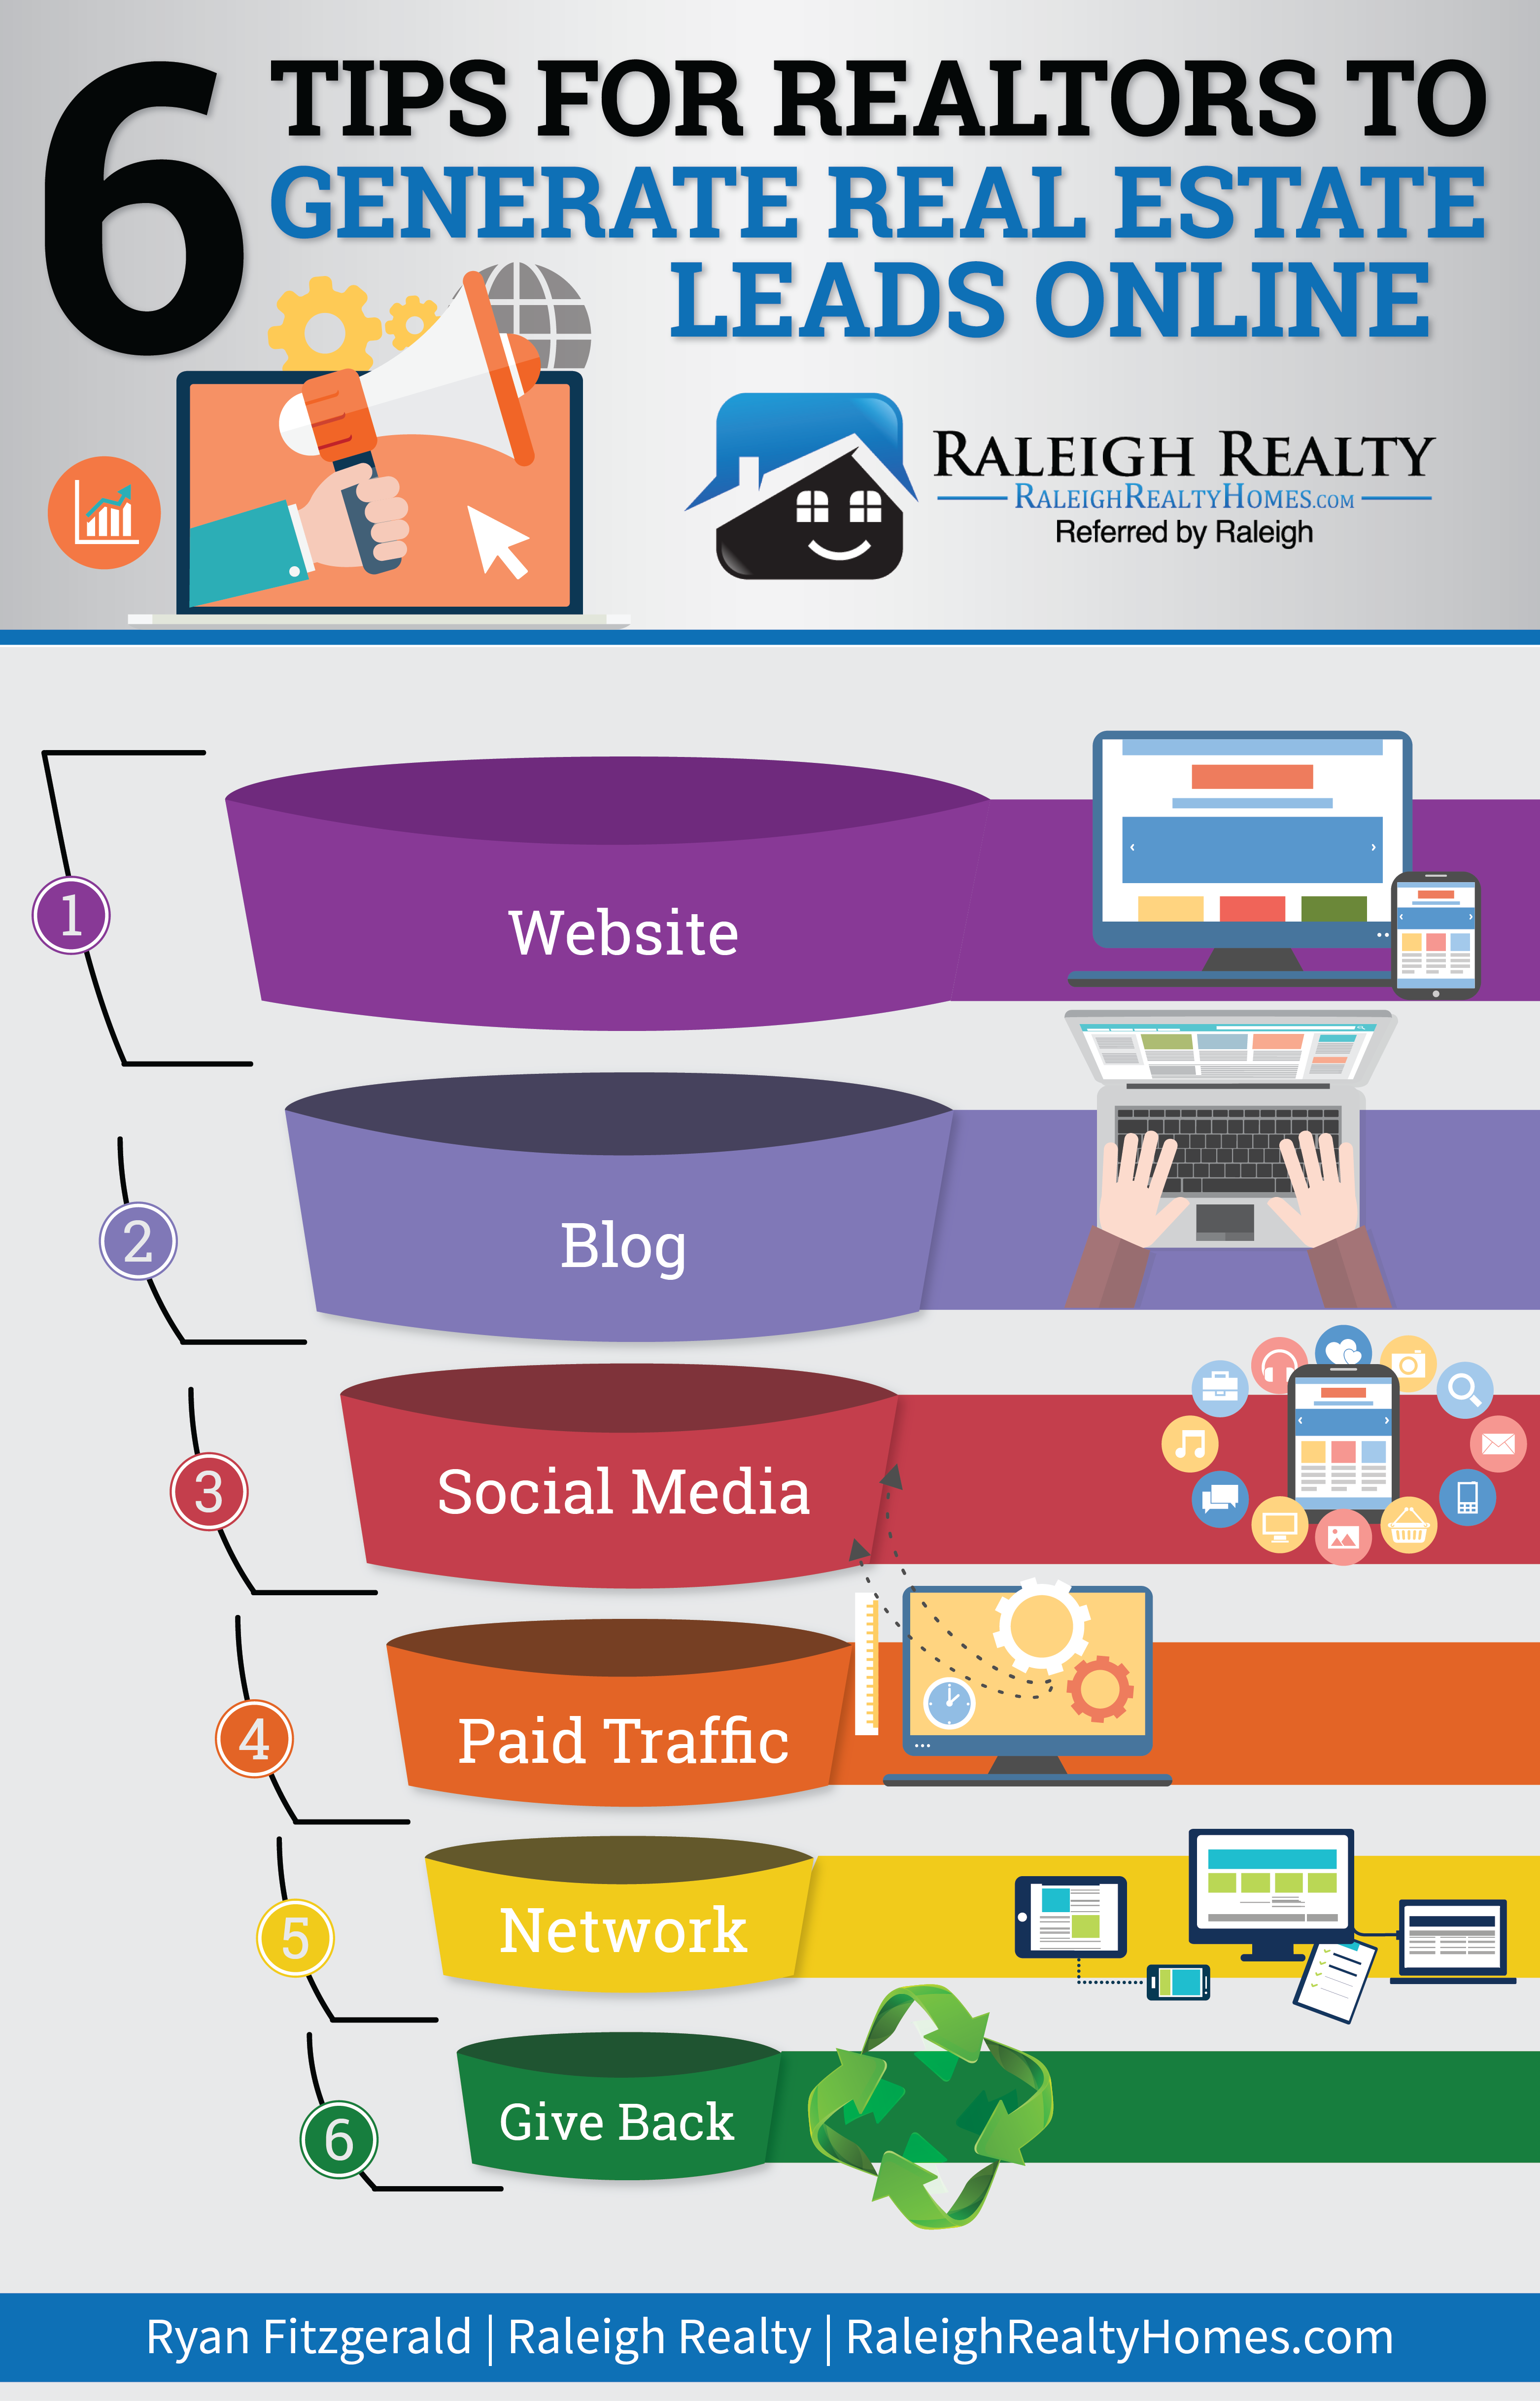 How to Generate Real Estate Leads Online